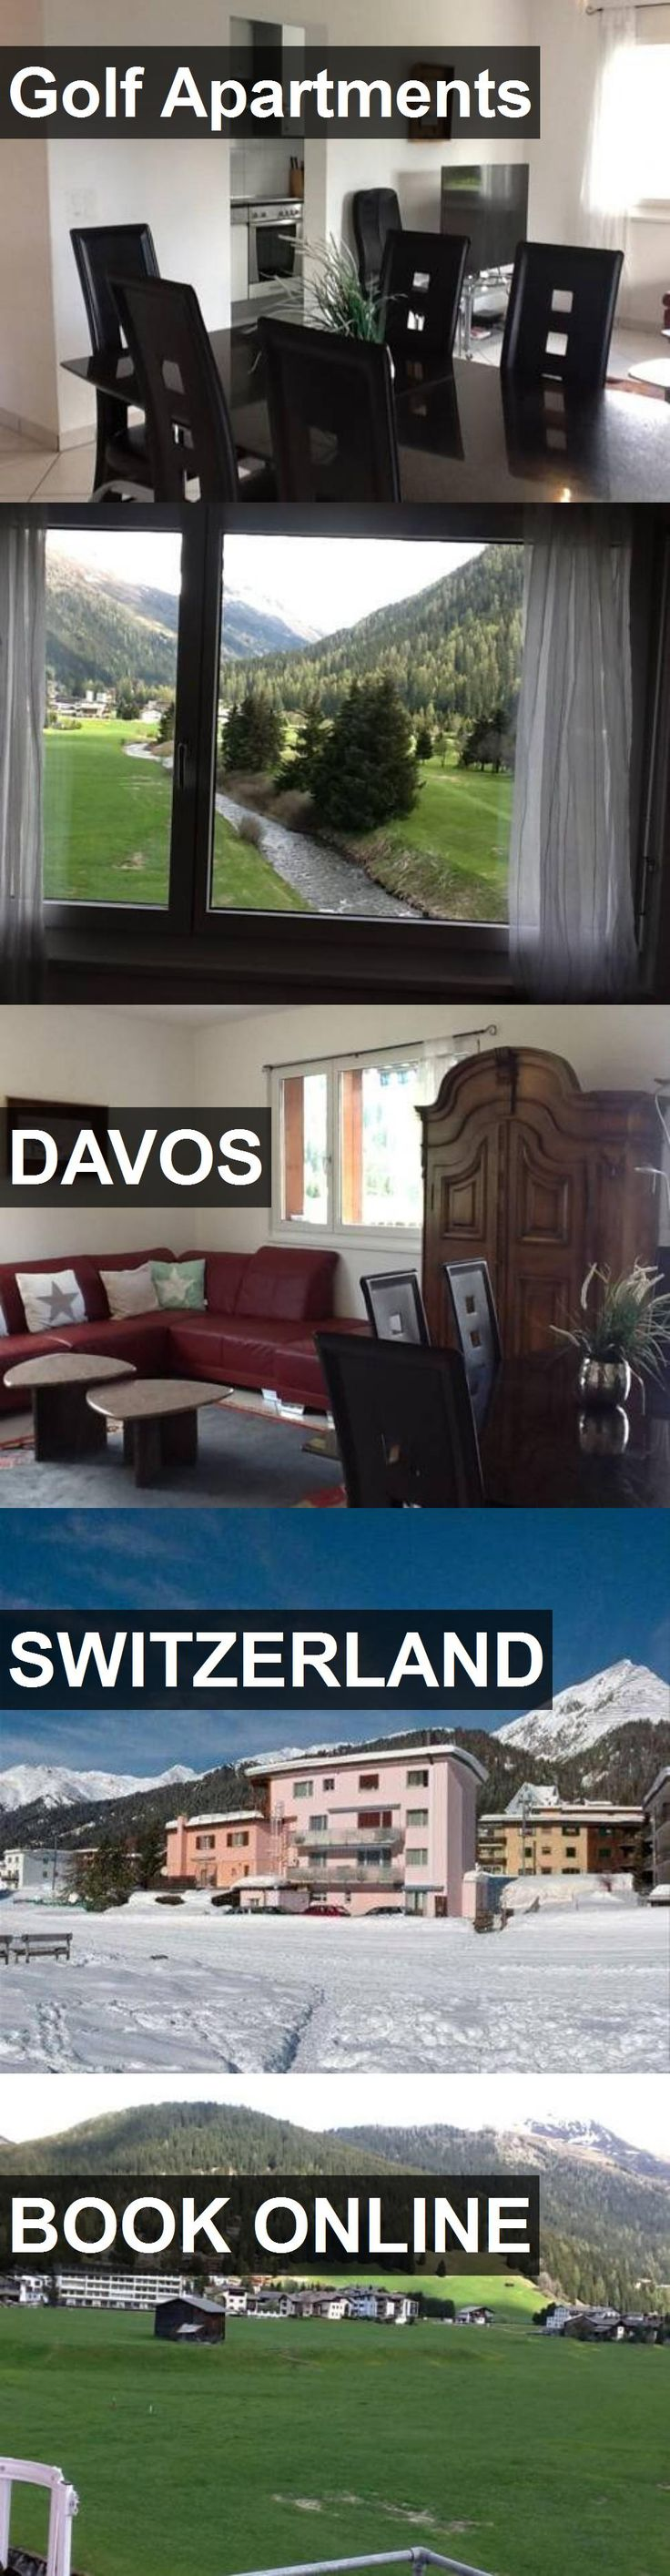 Hotel Golf Apartments in Davos, Switzerland. For more information, photos, reviews and best prices please follow the link. #Switzerland #Davos #GolfApartments #hotel #travel #vacation